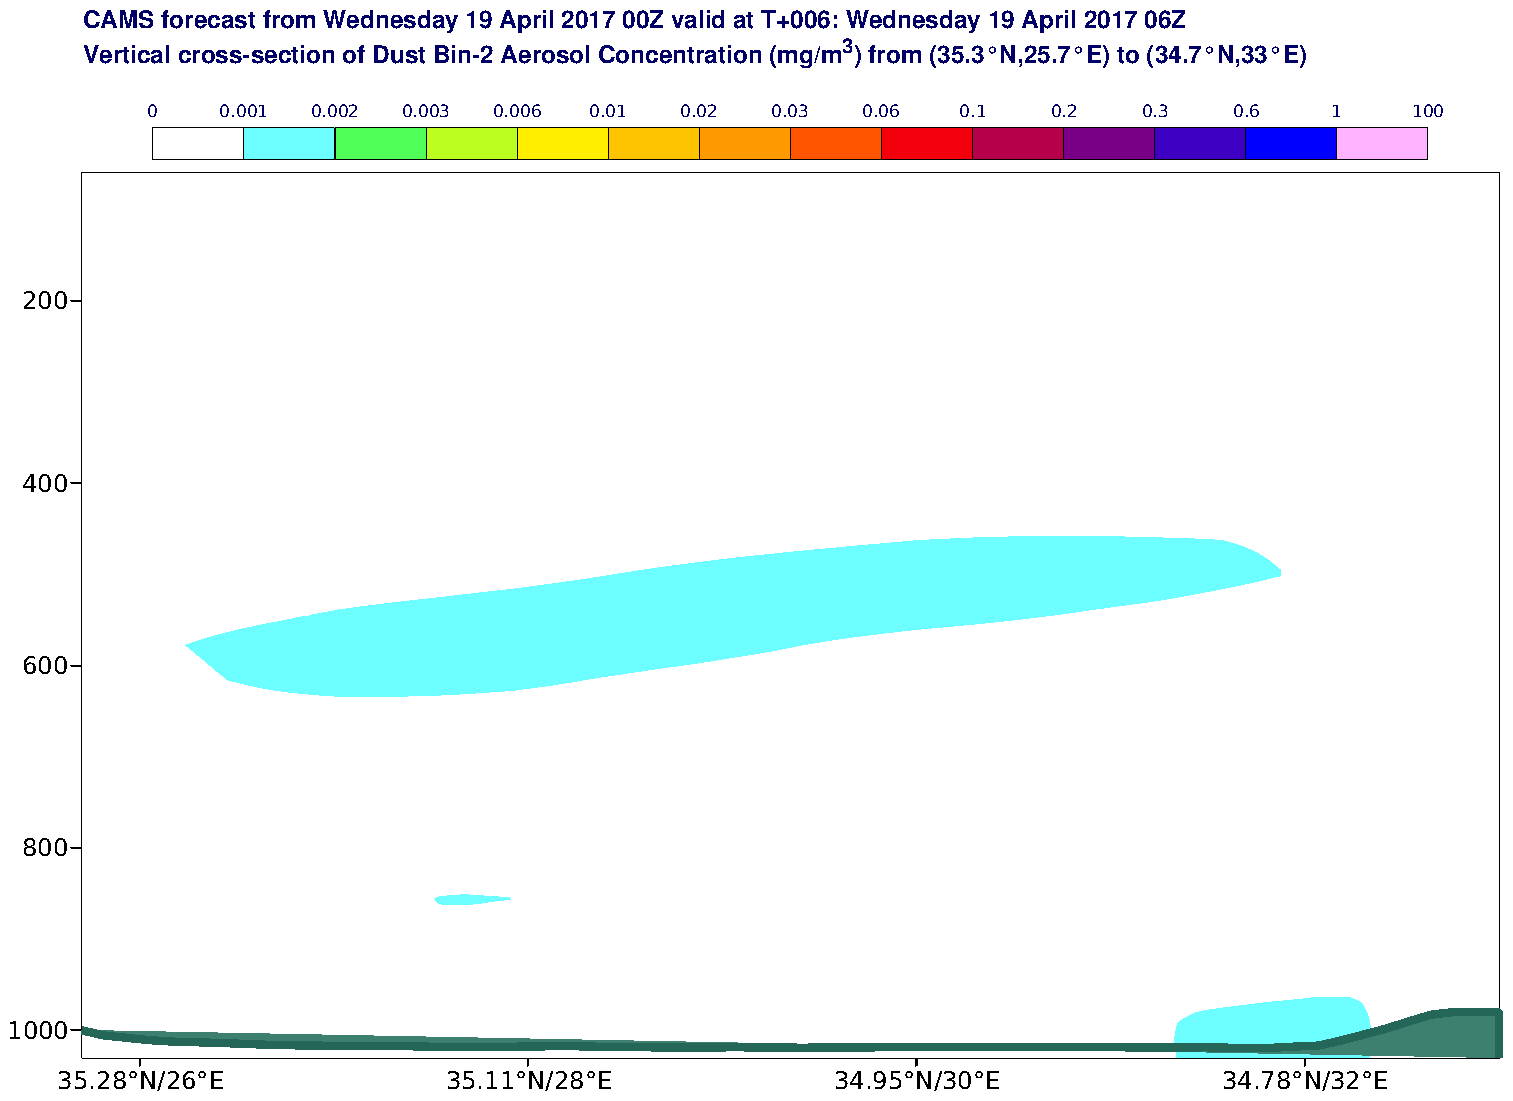 Vertical cross-section of Dust Bin-2 Aerosol Concentration (mg/m3) valid at T6 - 2017-04-19 06:00